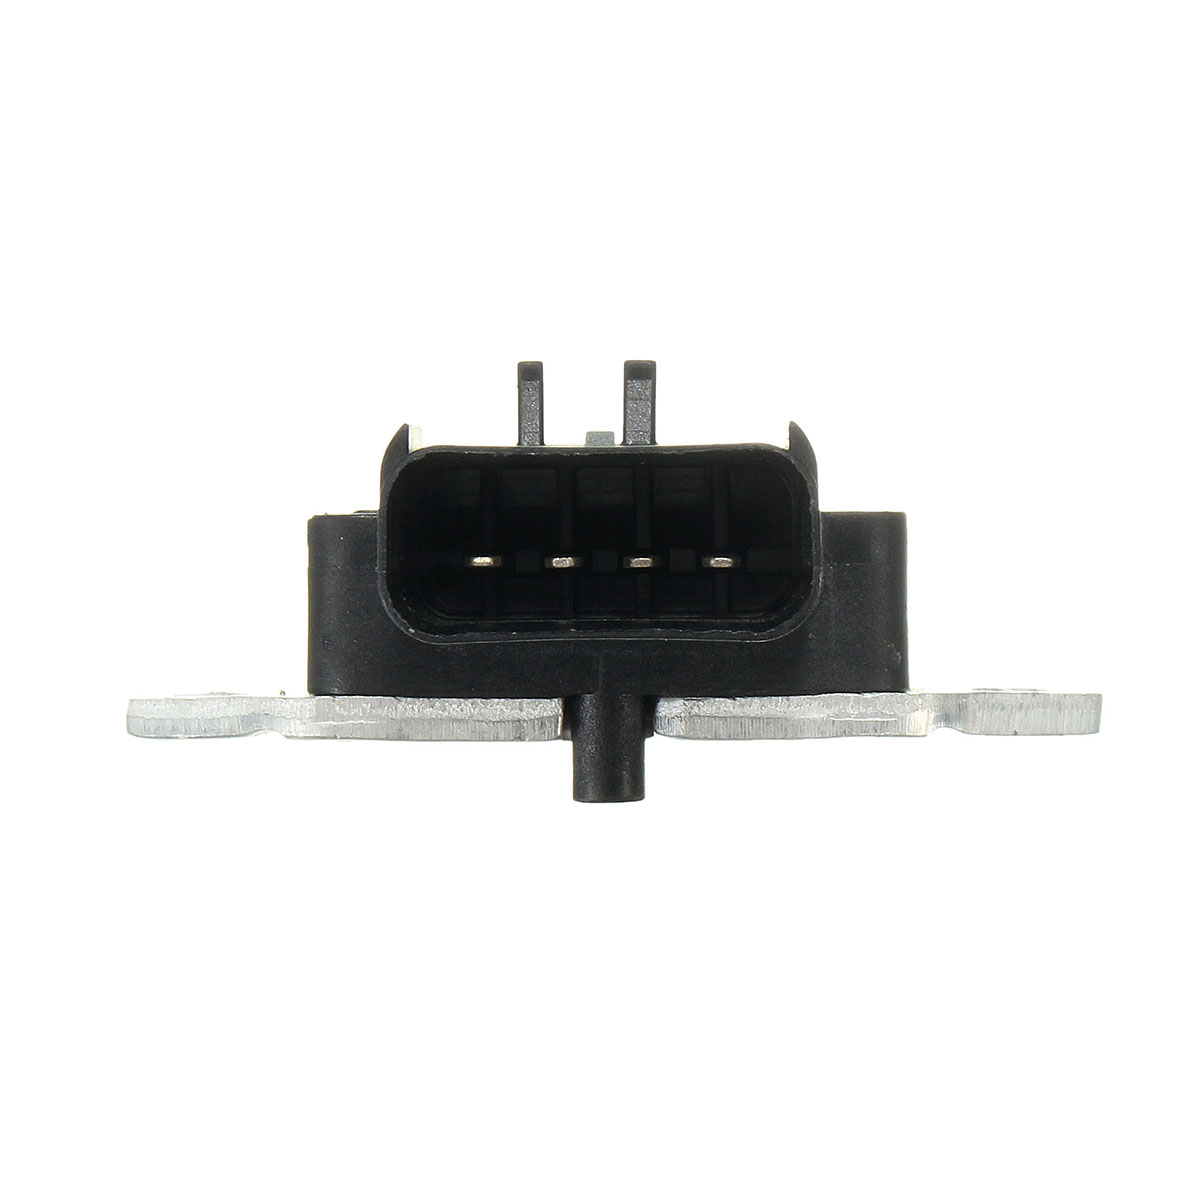 Blower Resistor Cooling Fan Relay For Chrysler Dodge Jeep Sensor 5017491ab 4707286af In Air Conditioning Installation From Automobiles Motorcycles On